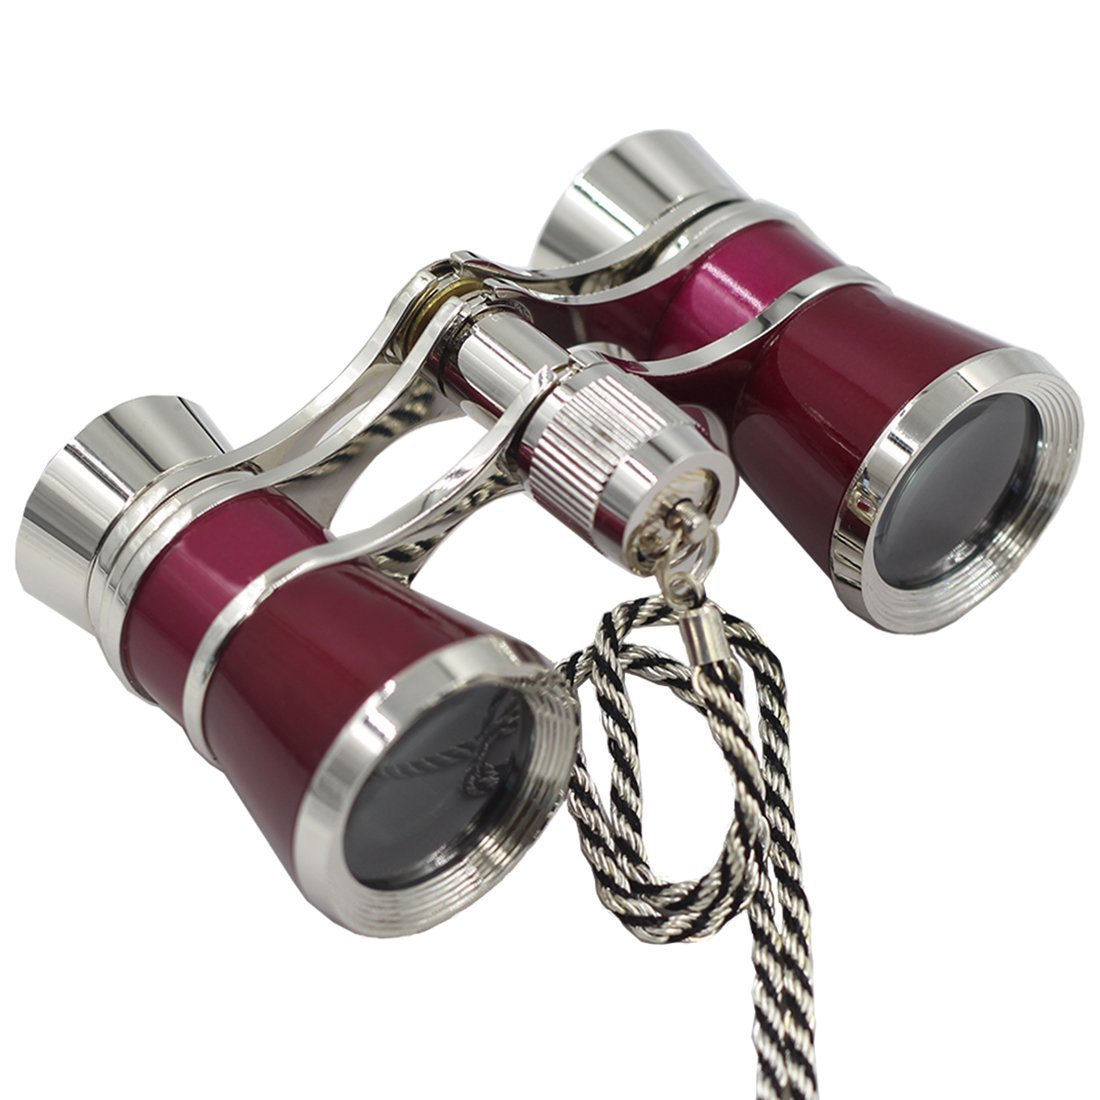 OPO Opera Theater Horse Racing Glasses Binocular Telescope Chain Necklace (Red with Silver Trim) 3X25